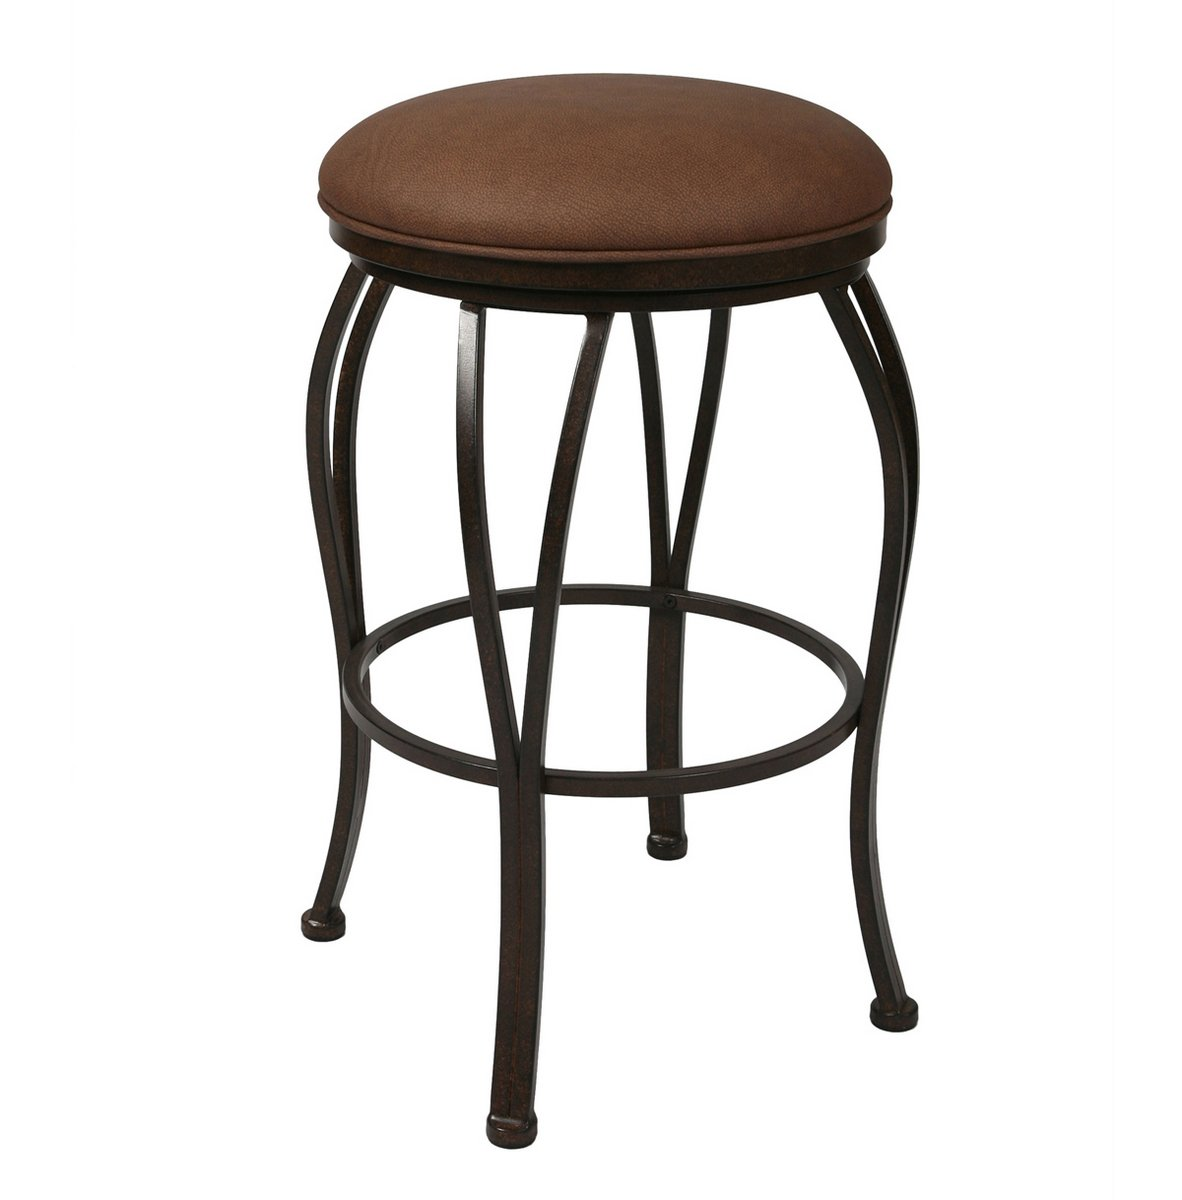 Pastel Lexington Backless Barstool - Autumn Rust - Moccasin Suede Seat - (30 Inch)